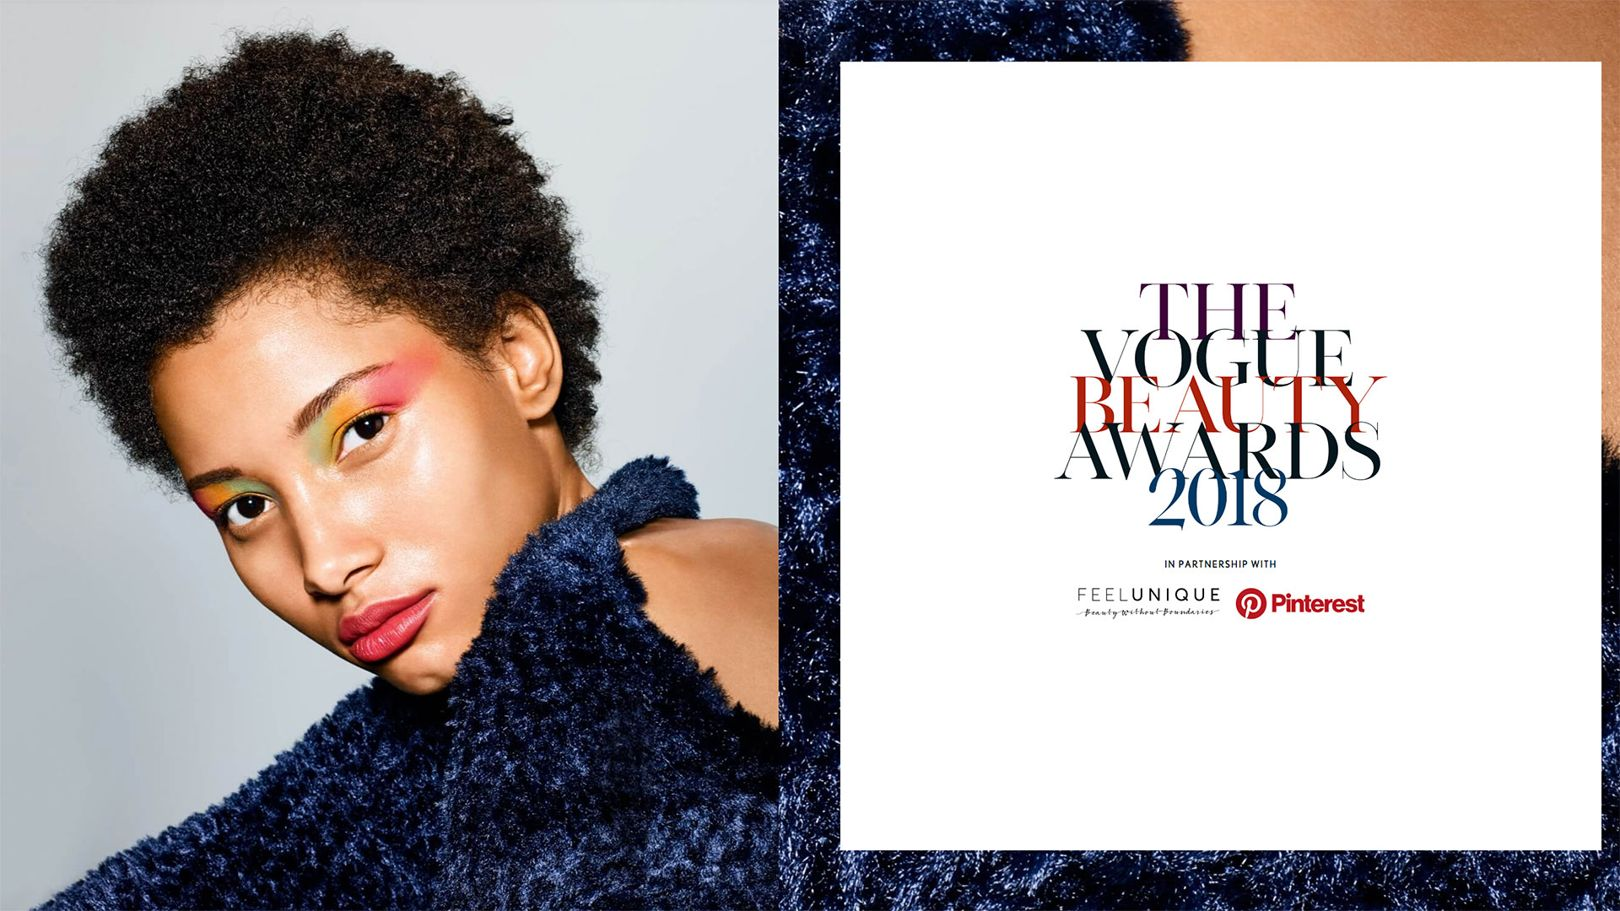 The Winners Of The Vogue Beauty Awards 2018